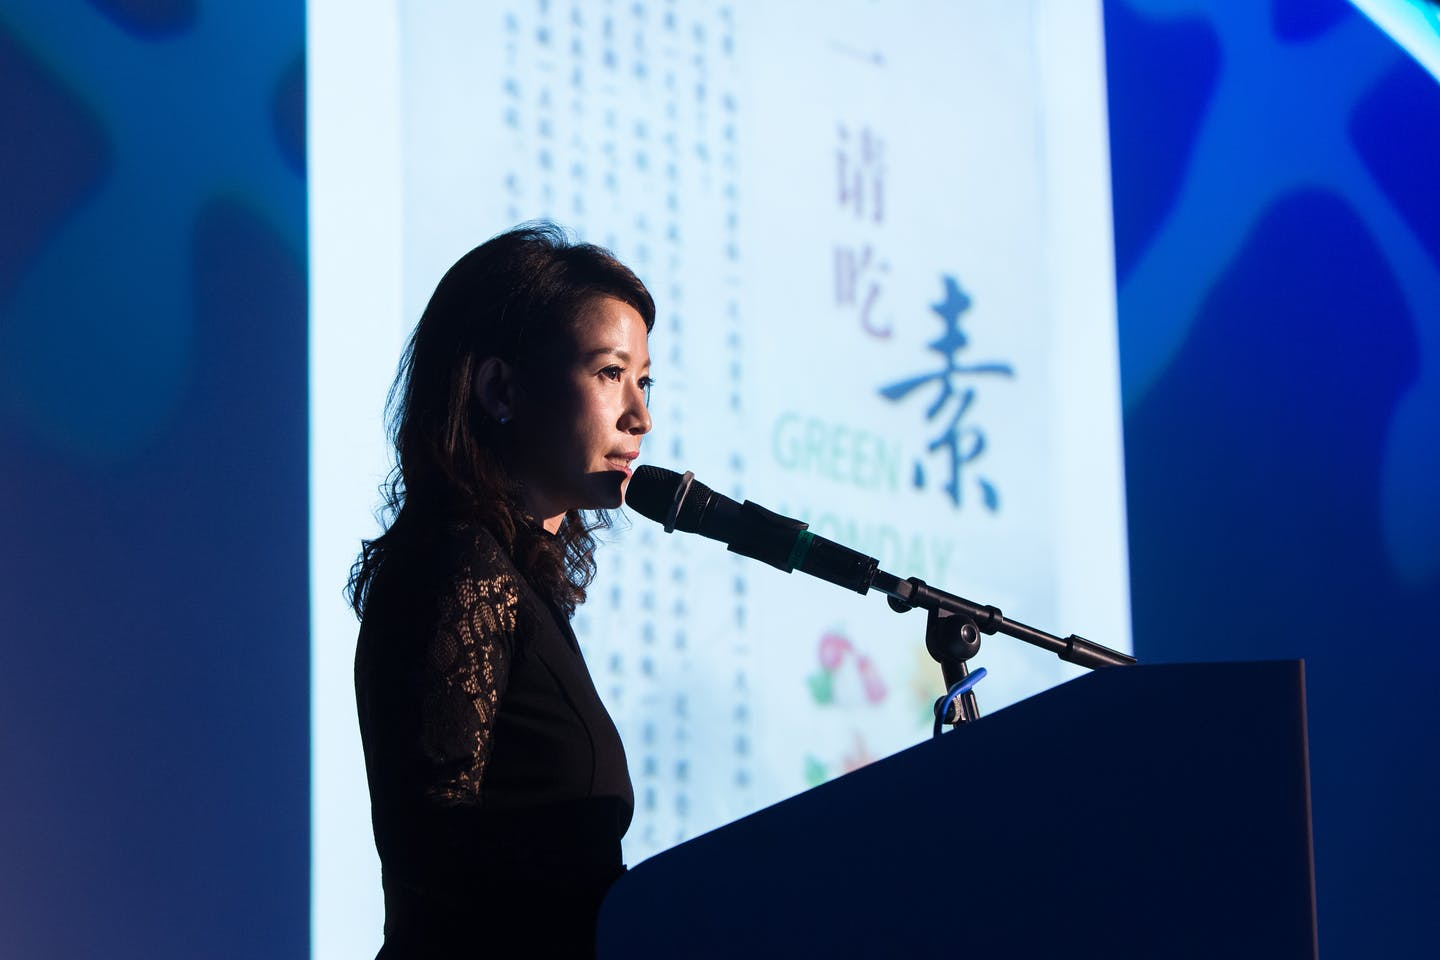 Juliana Lam, founder and managing director of Julius Industries